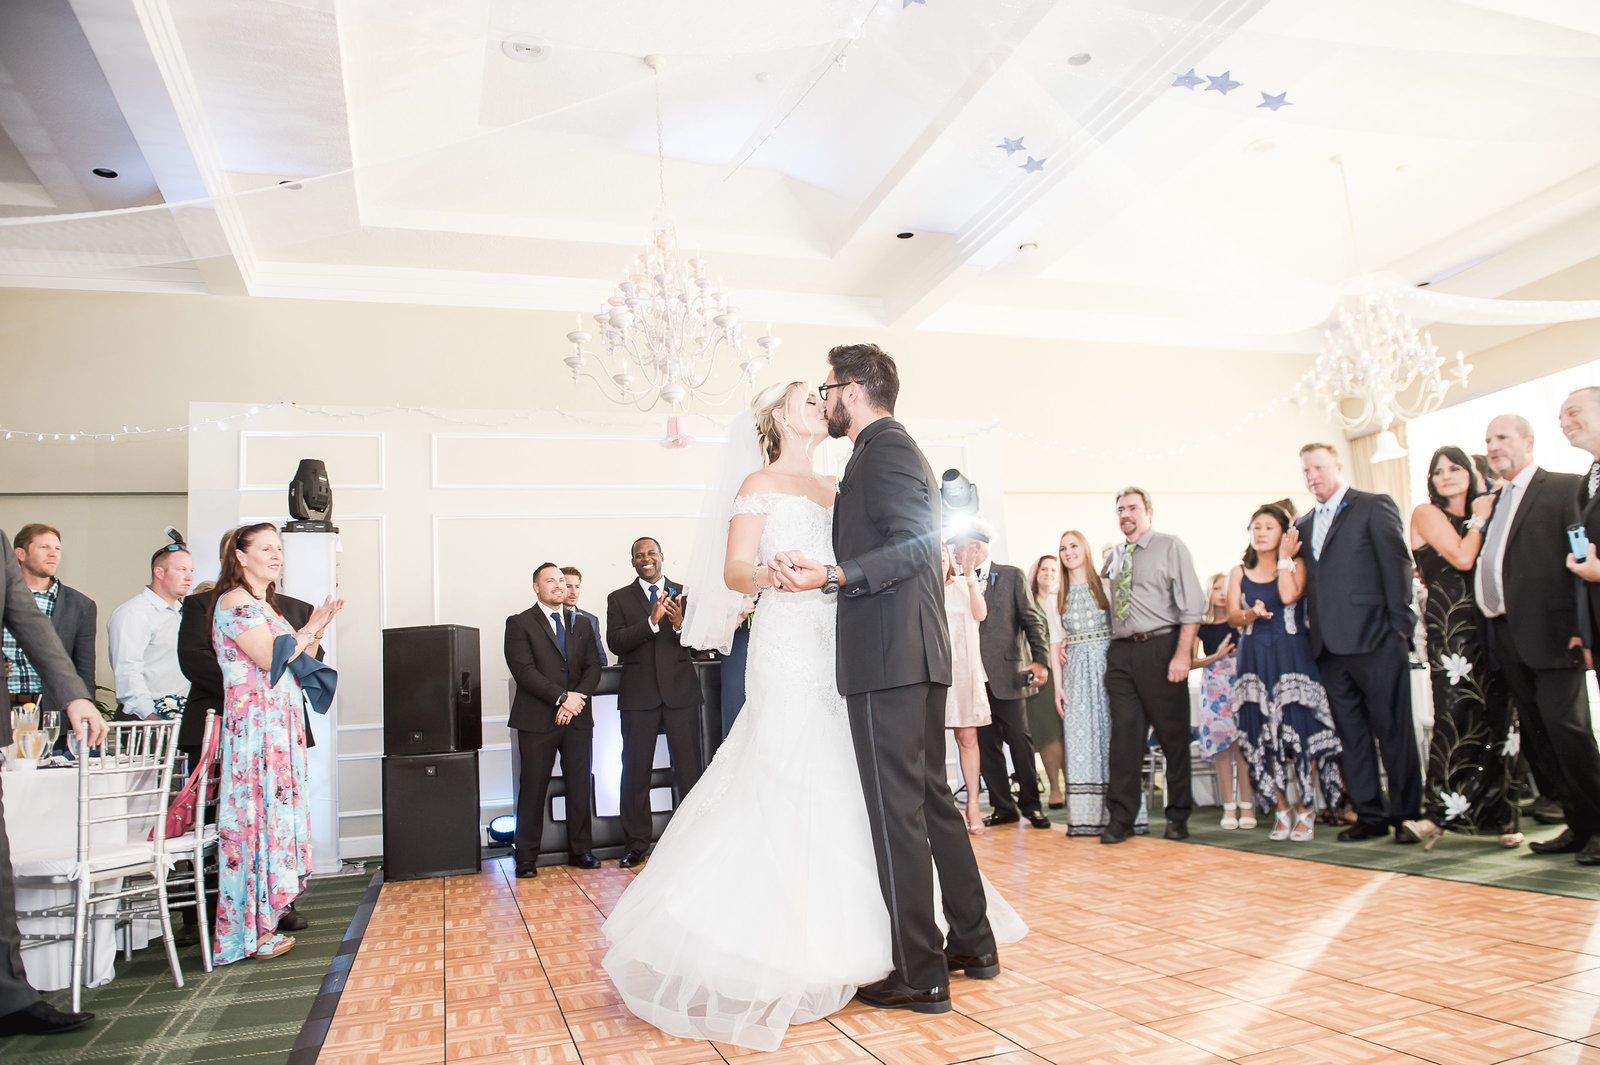 First Dance - Myacoo Country Club Wedding - Palm Beach Wedding Photography by Palm Beach Photography, Inc.